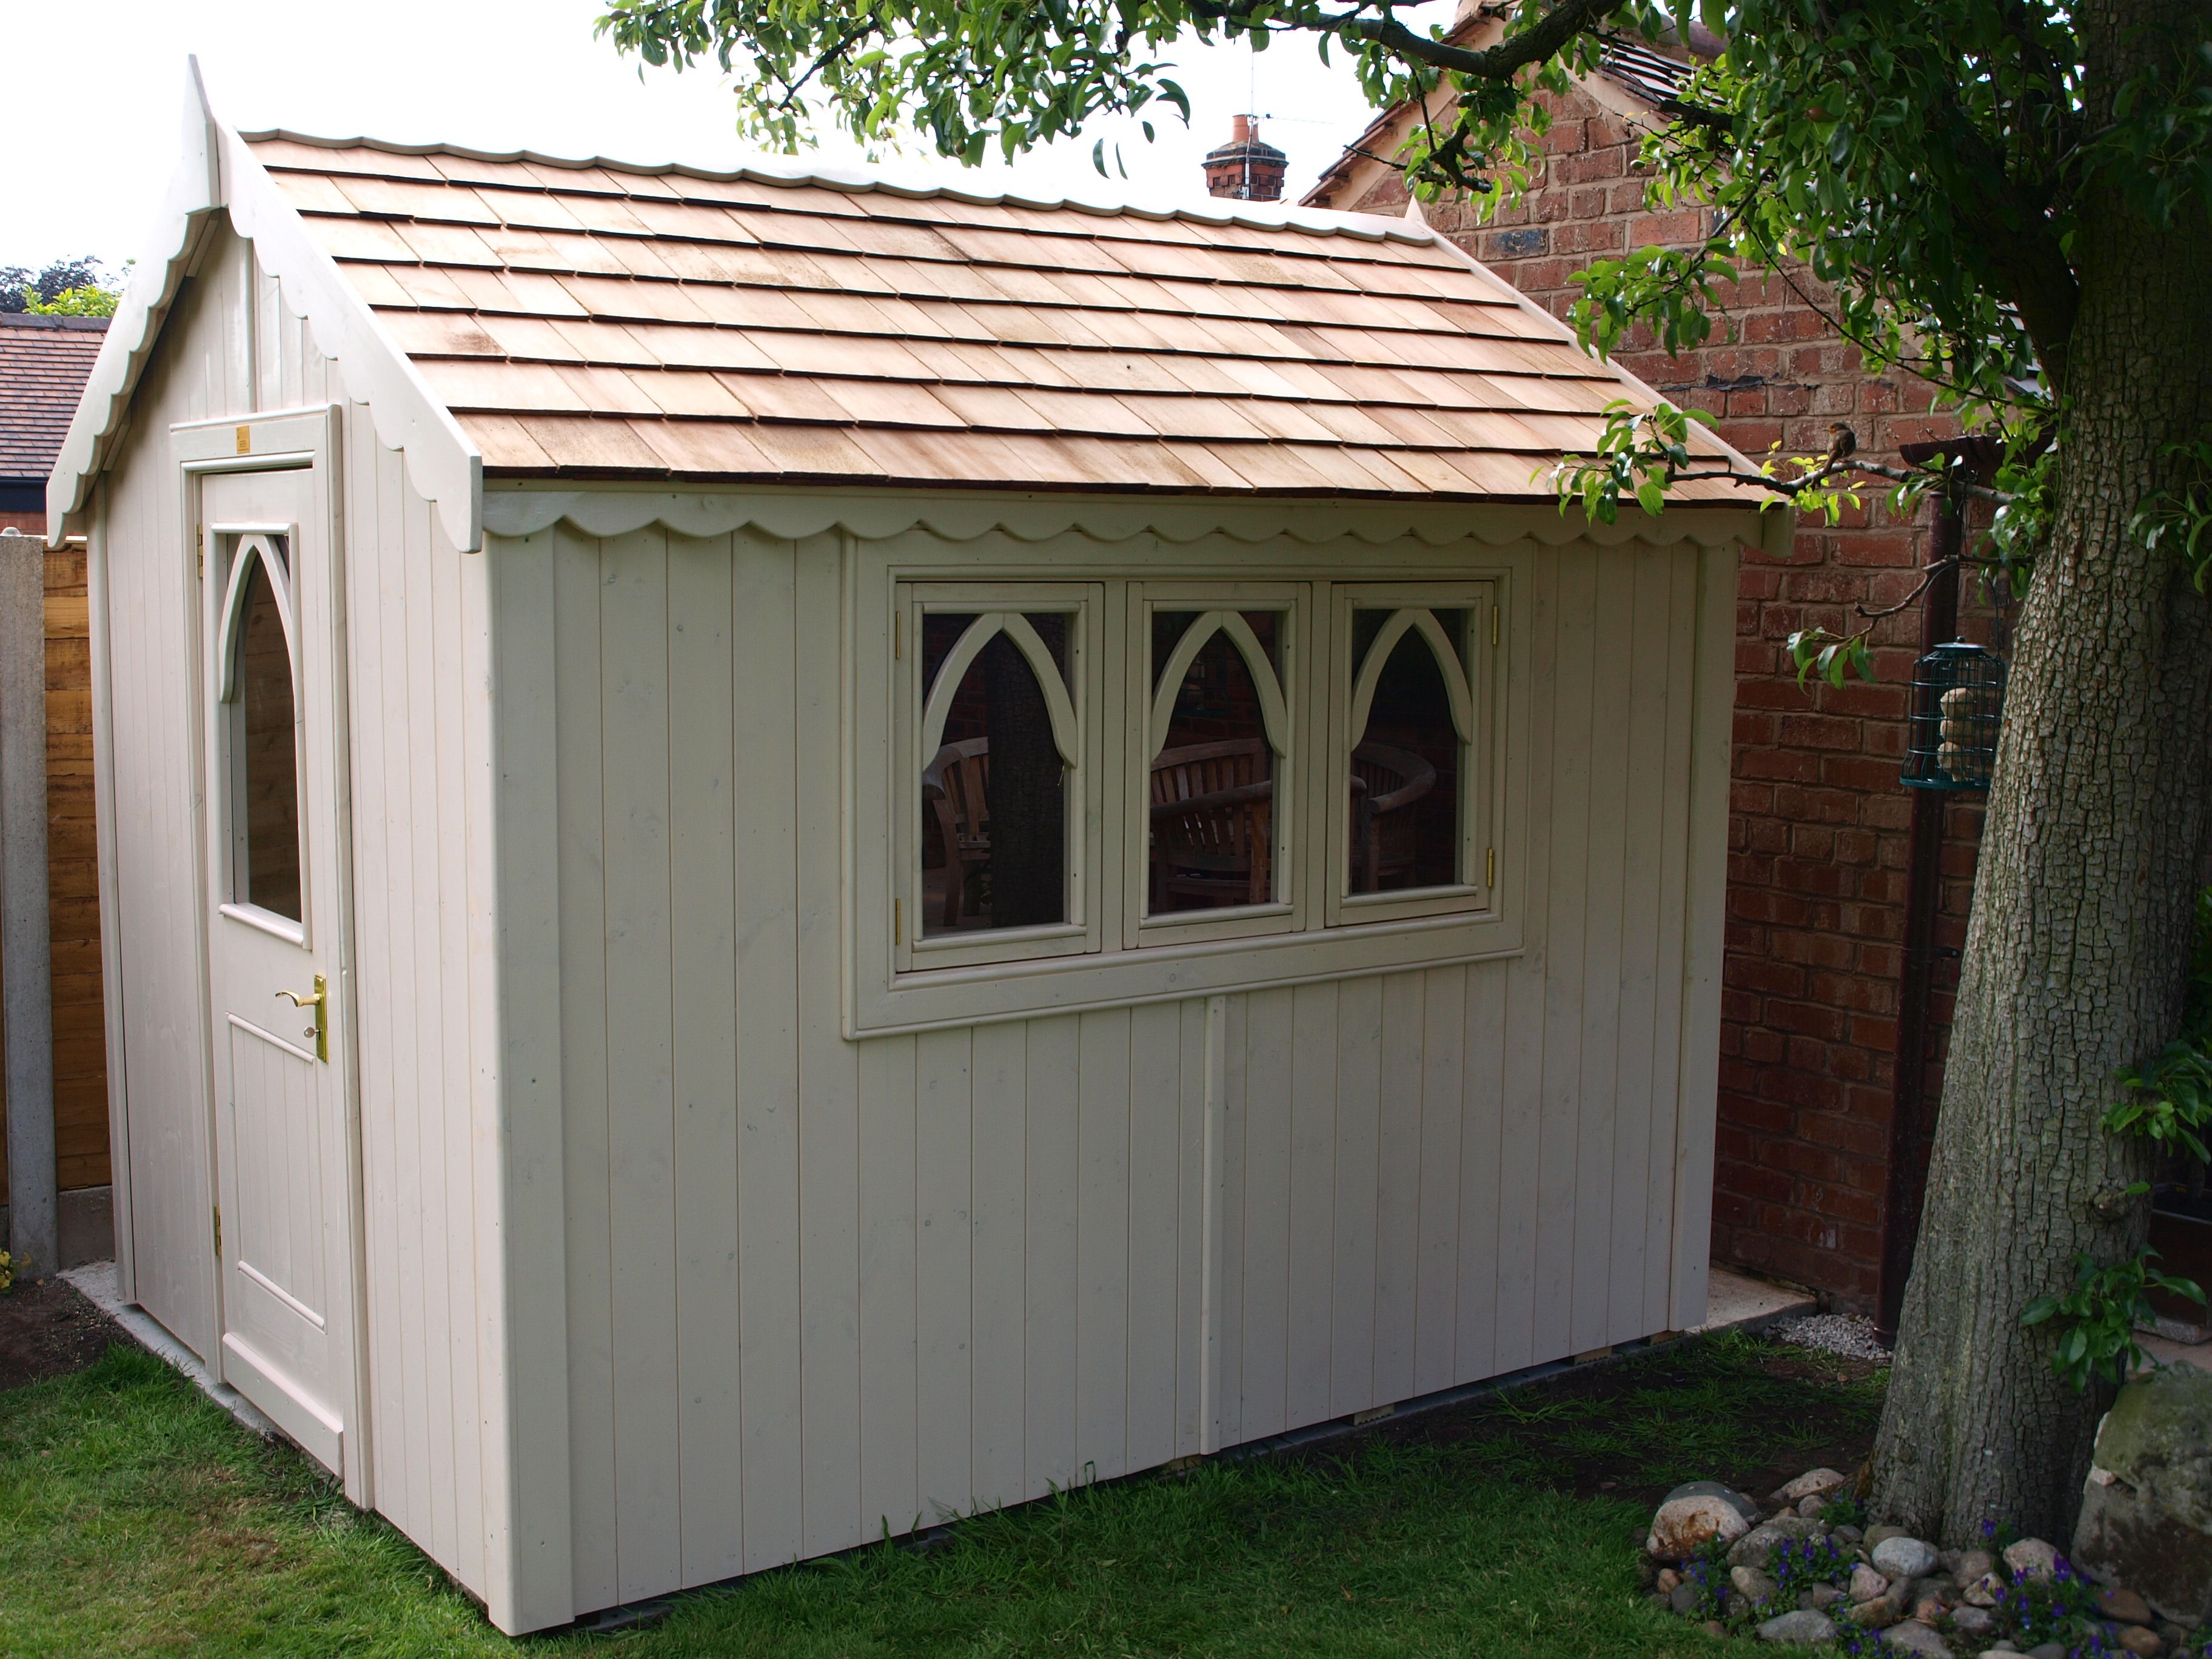 Best Gothic Shed With Cedar Shingle Roof And Triple Window Shed Ideas Pinterest 400 x 300